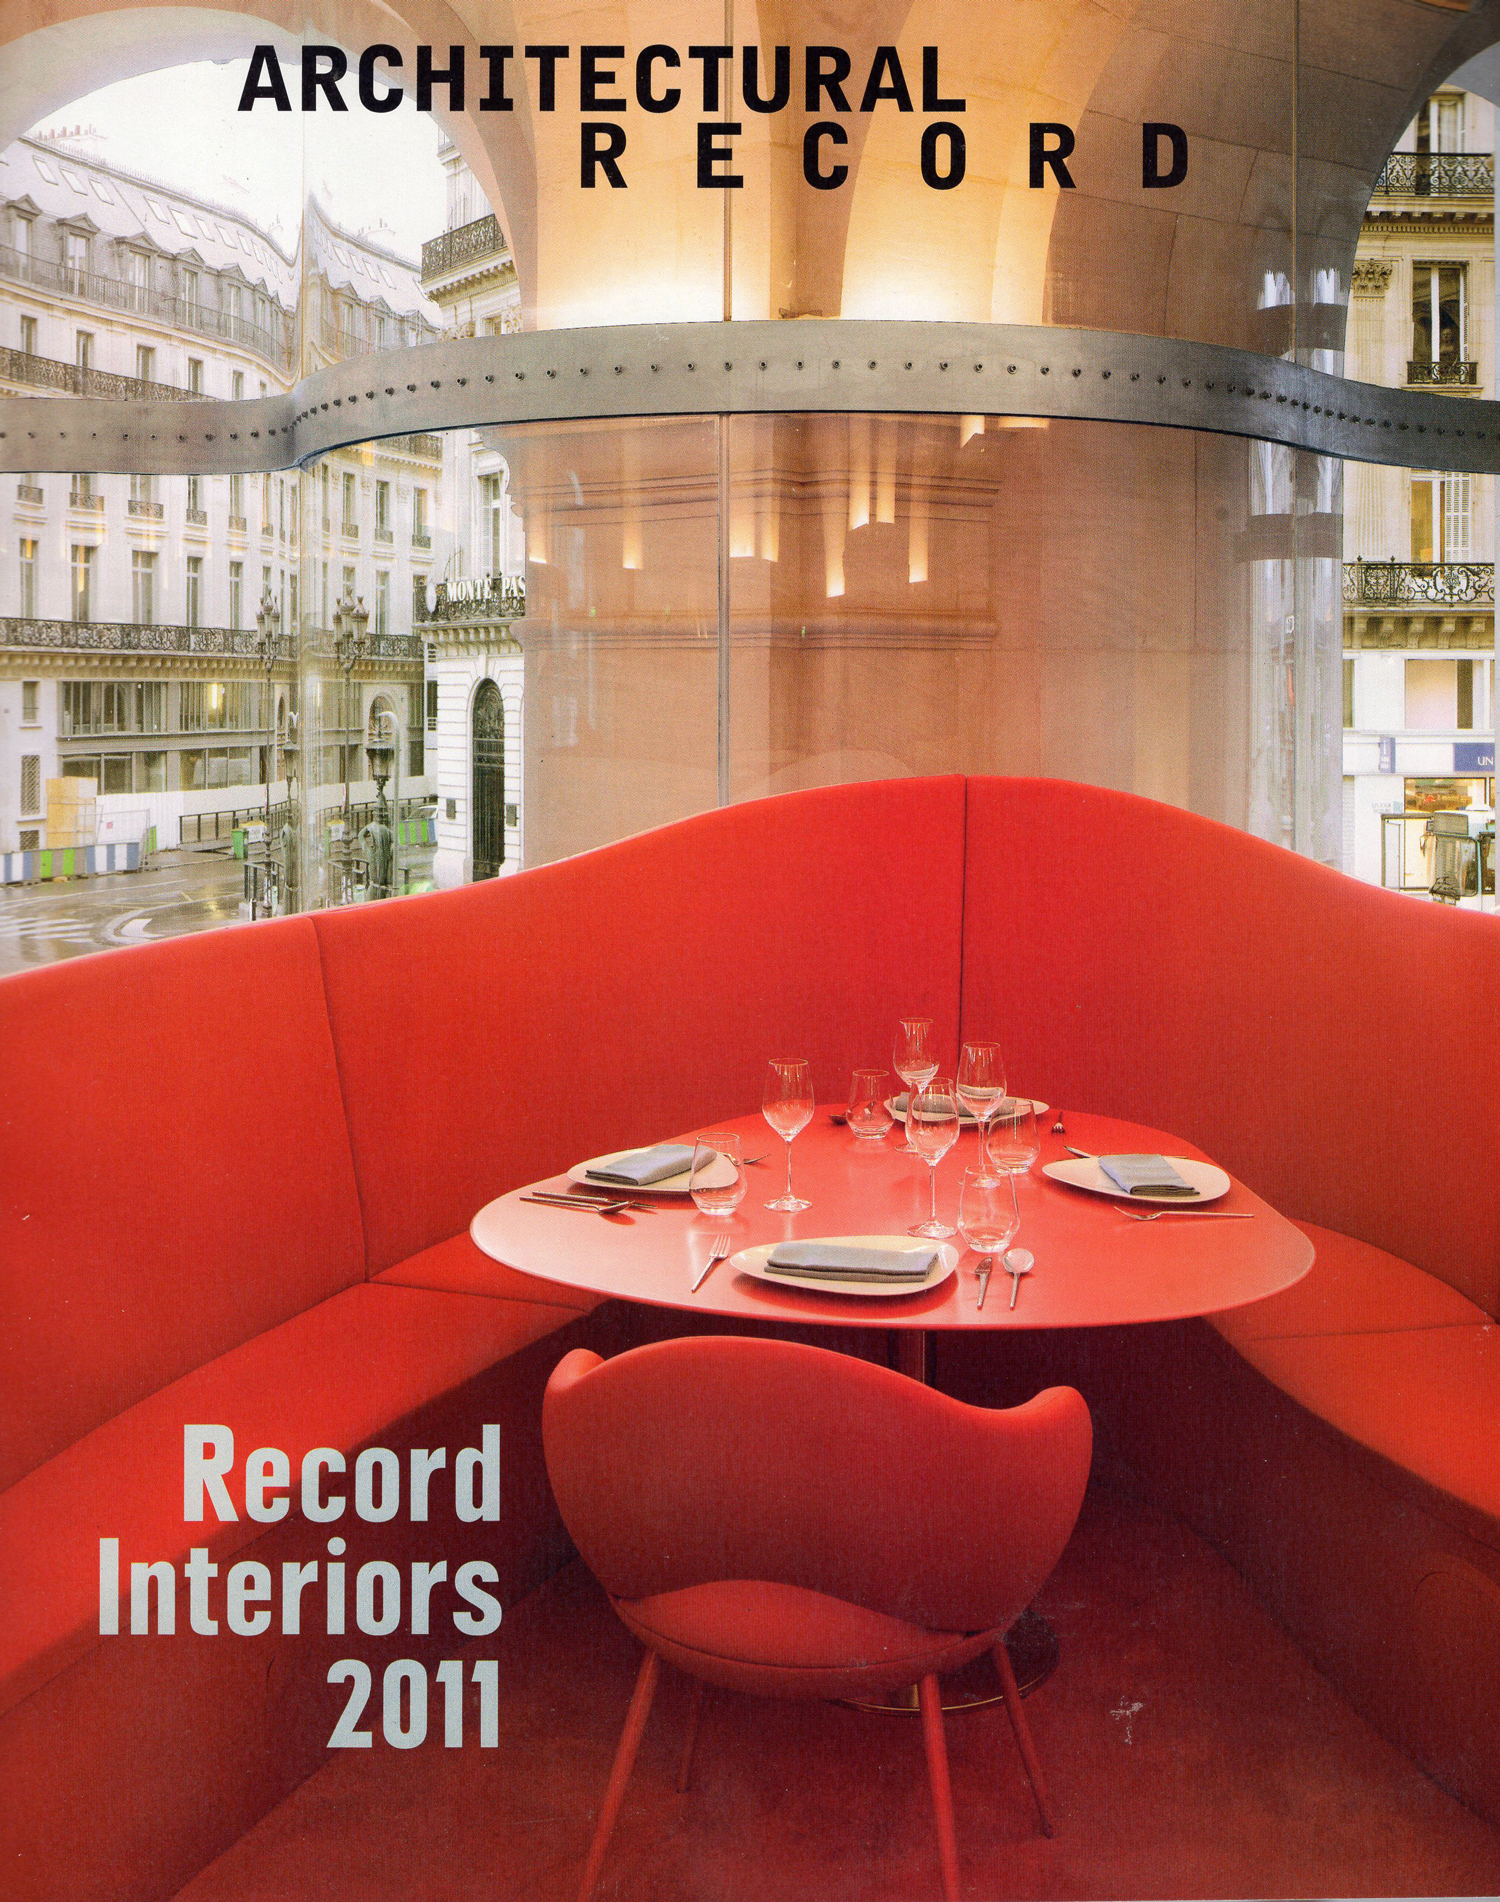 Architectural Record -  Record Interiors 2011